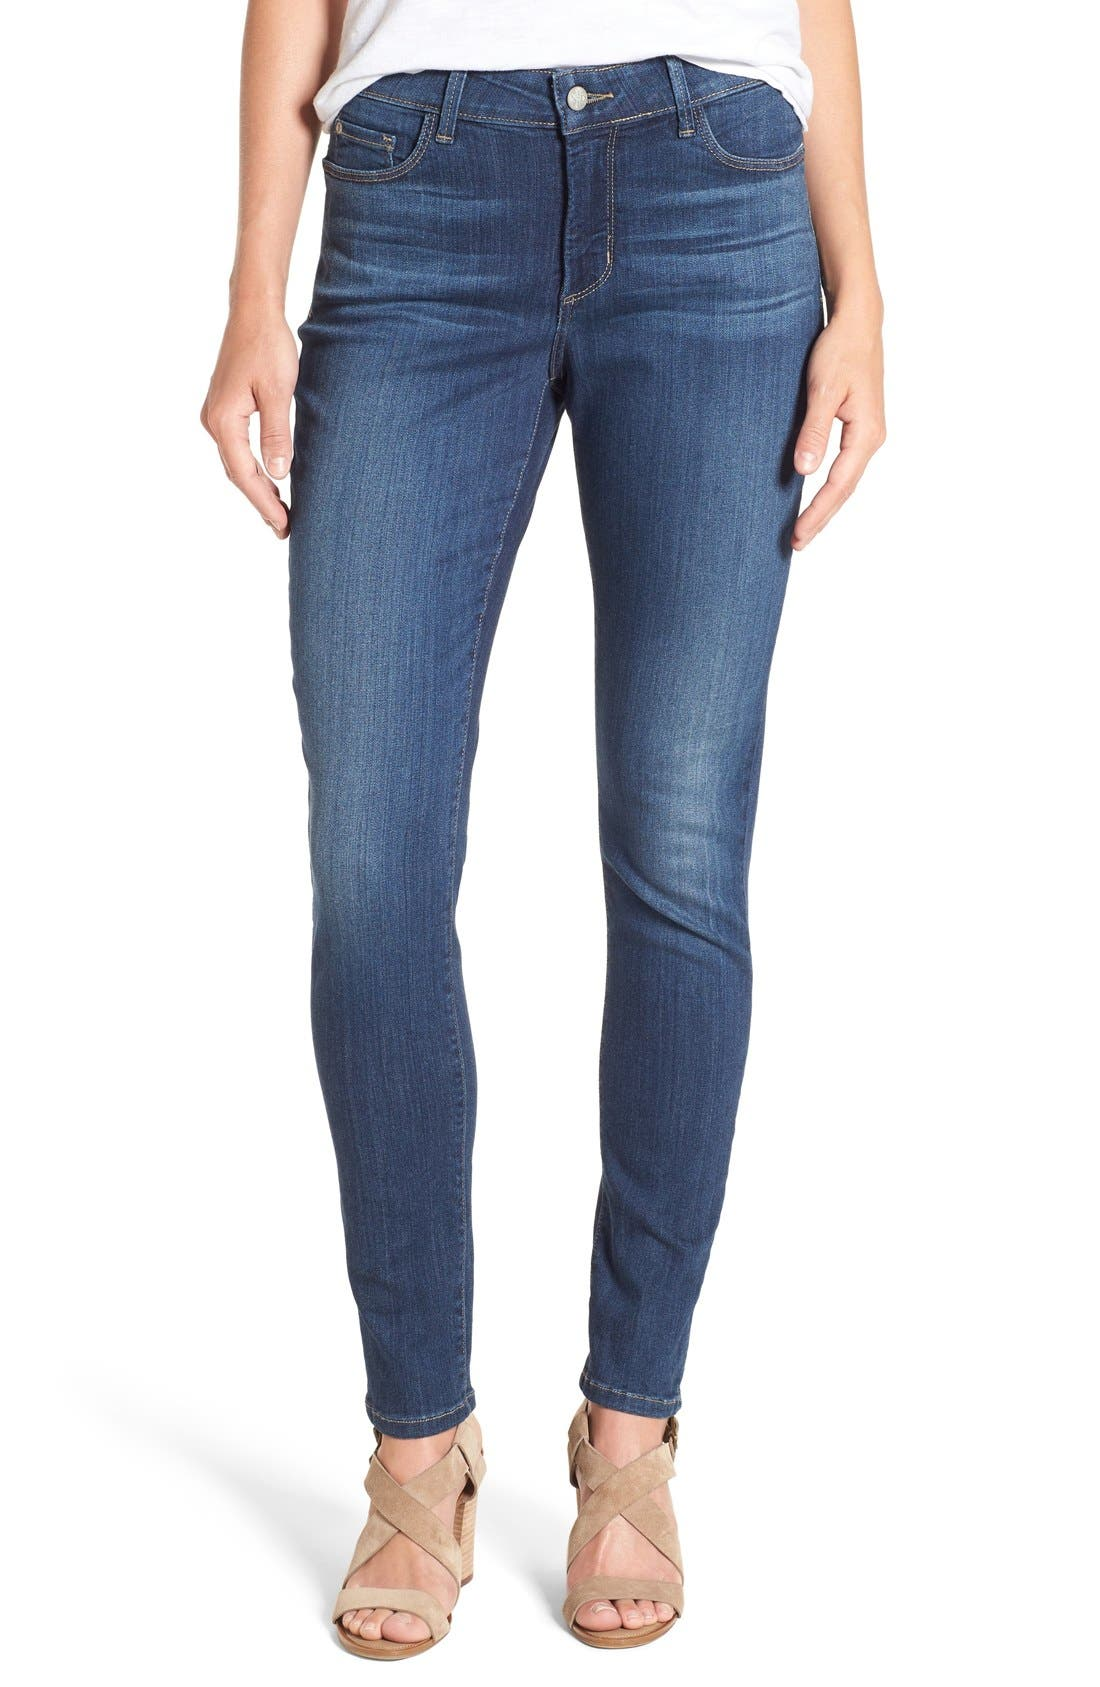 'Ami' Stretch Skinny Jeans,                             Main thumbnail 1, color,                             Saint Veran